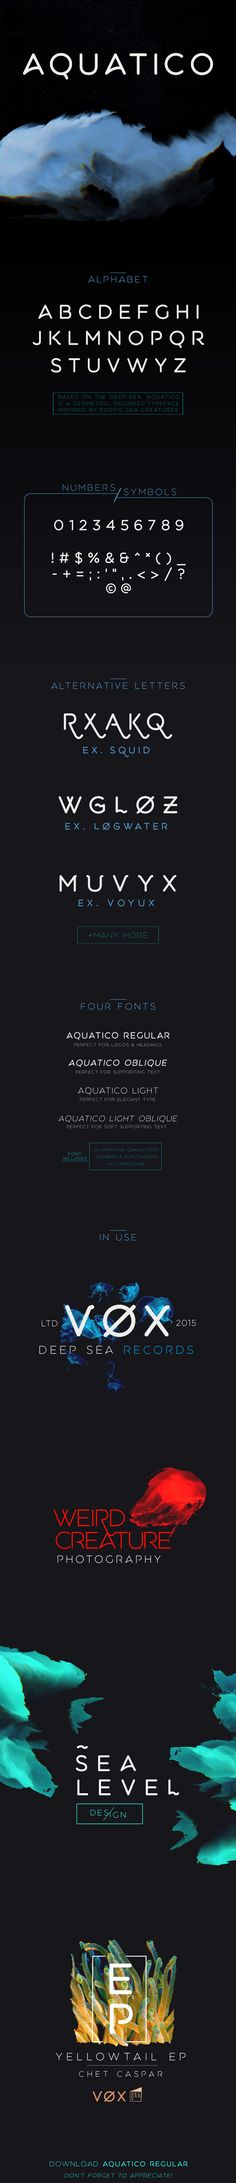 Aquatico - Free Typeface on Behance. Love this so much I bought the full version =)